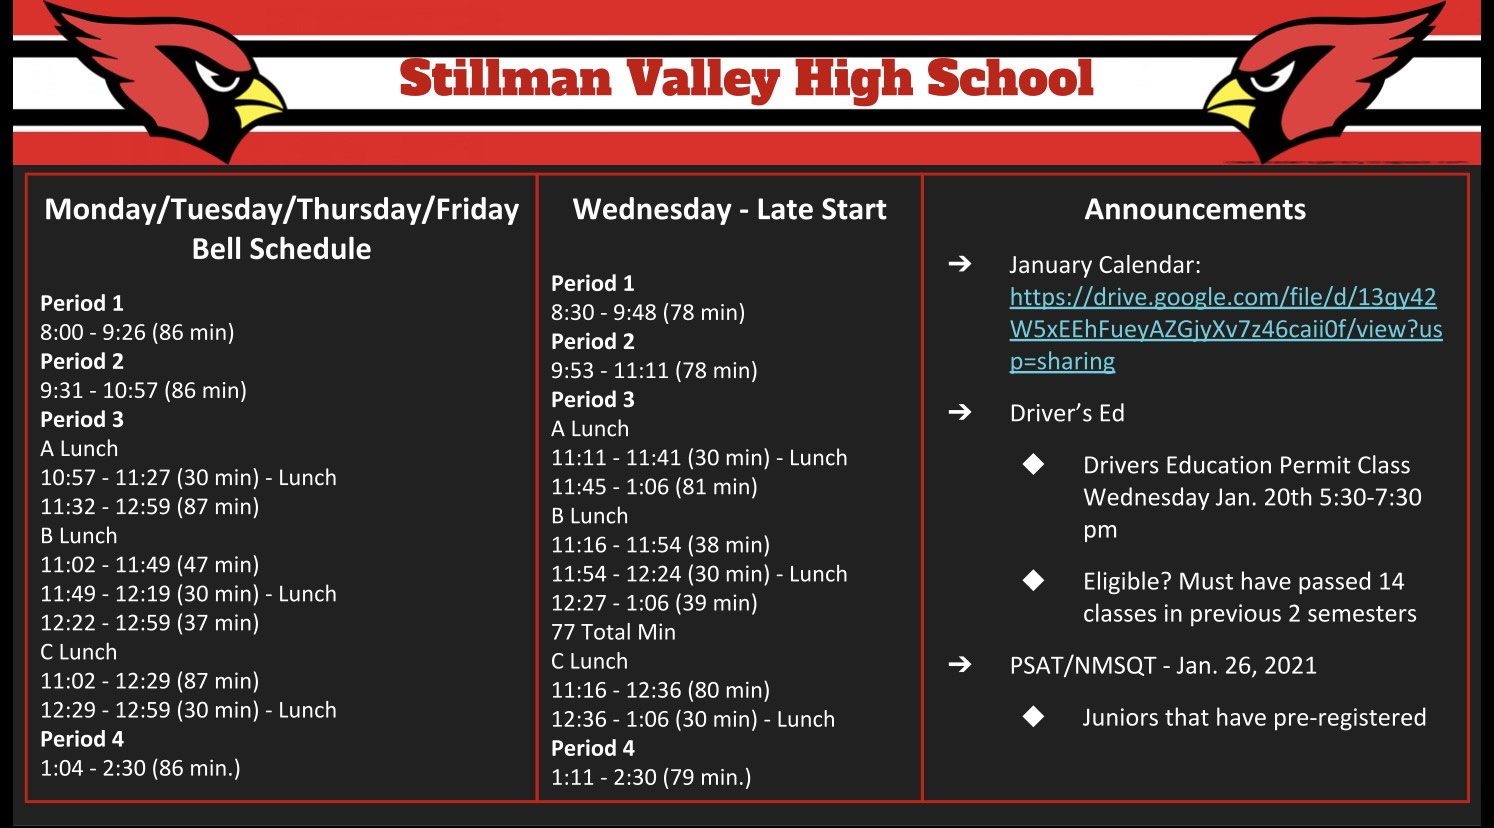 SVHS Announcements as of Jan. 15